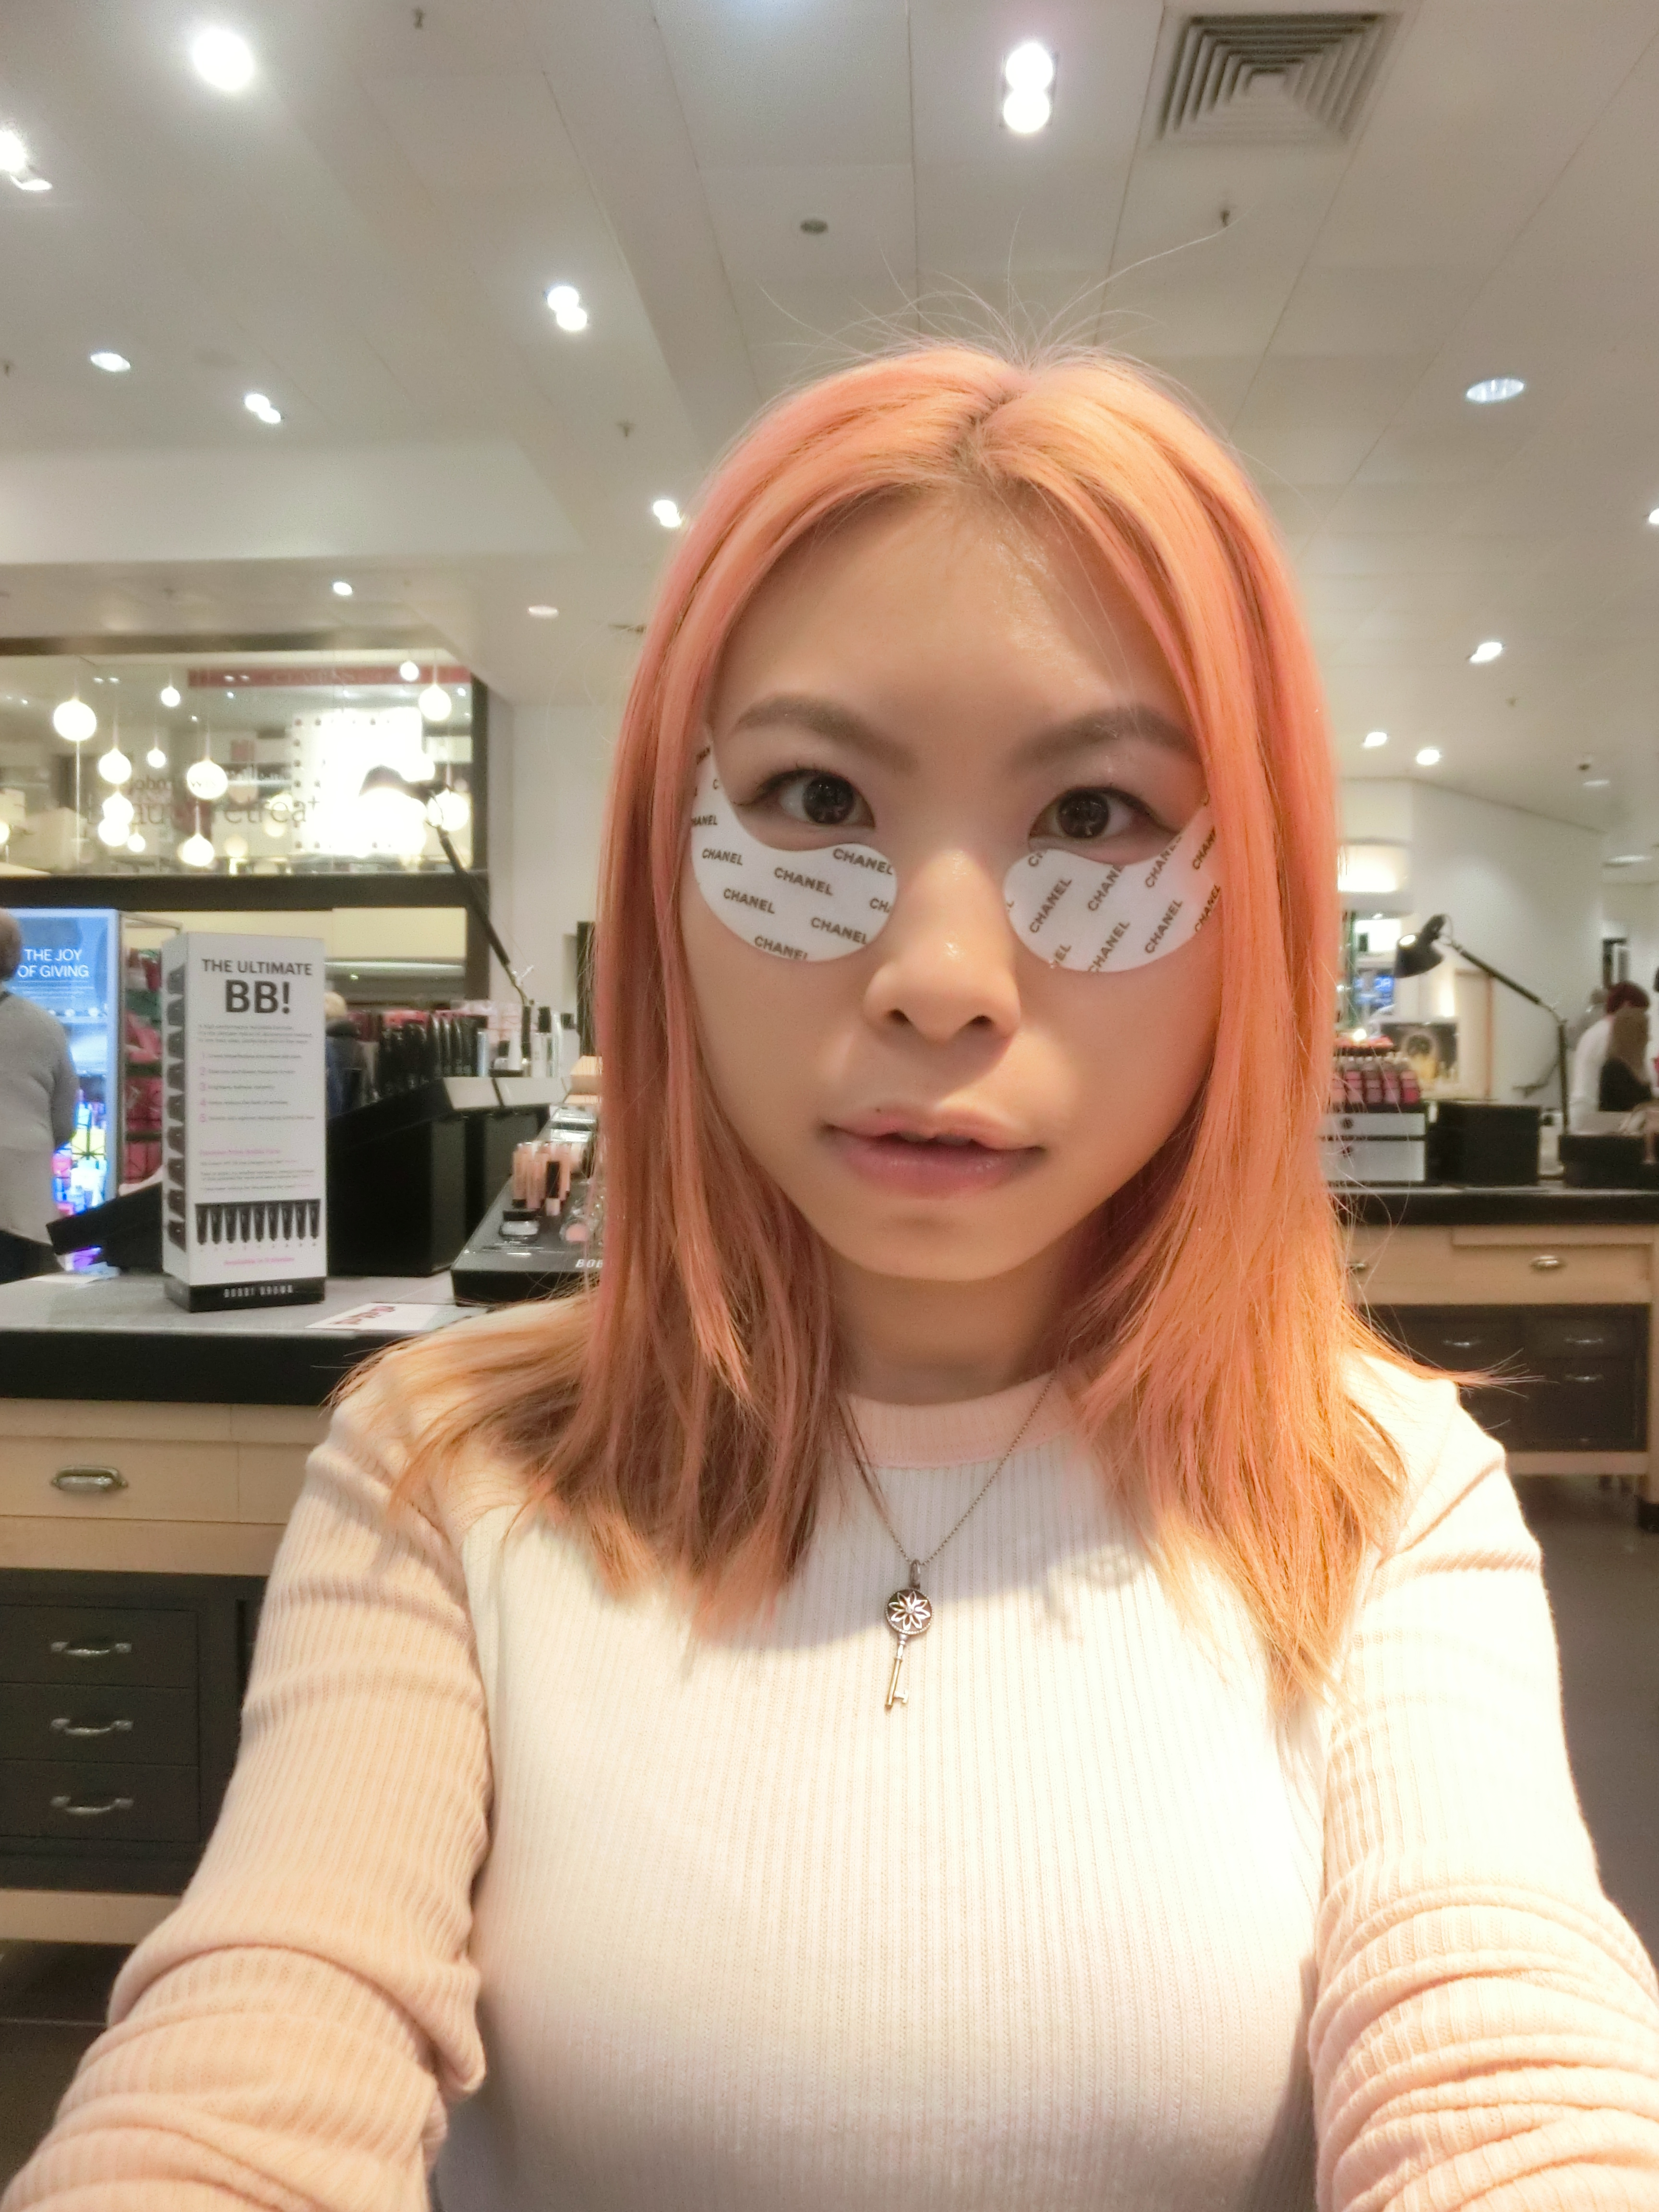 chanel eye mask before makeup.JPG